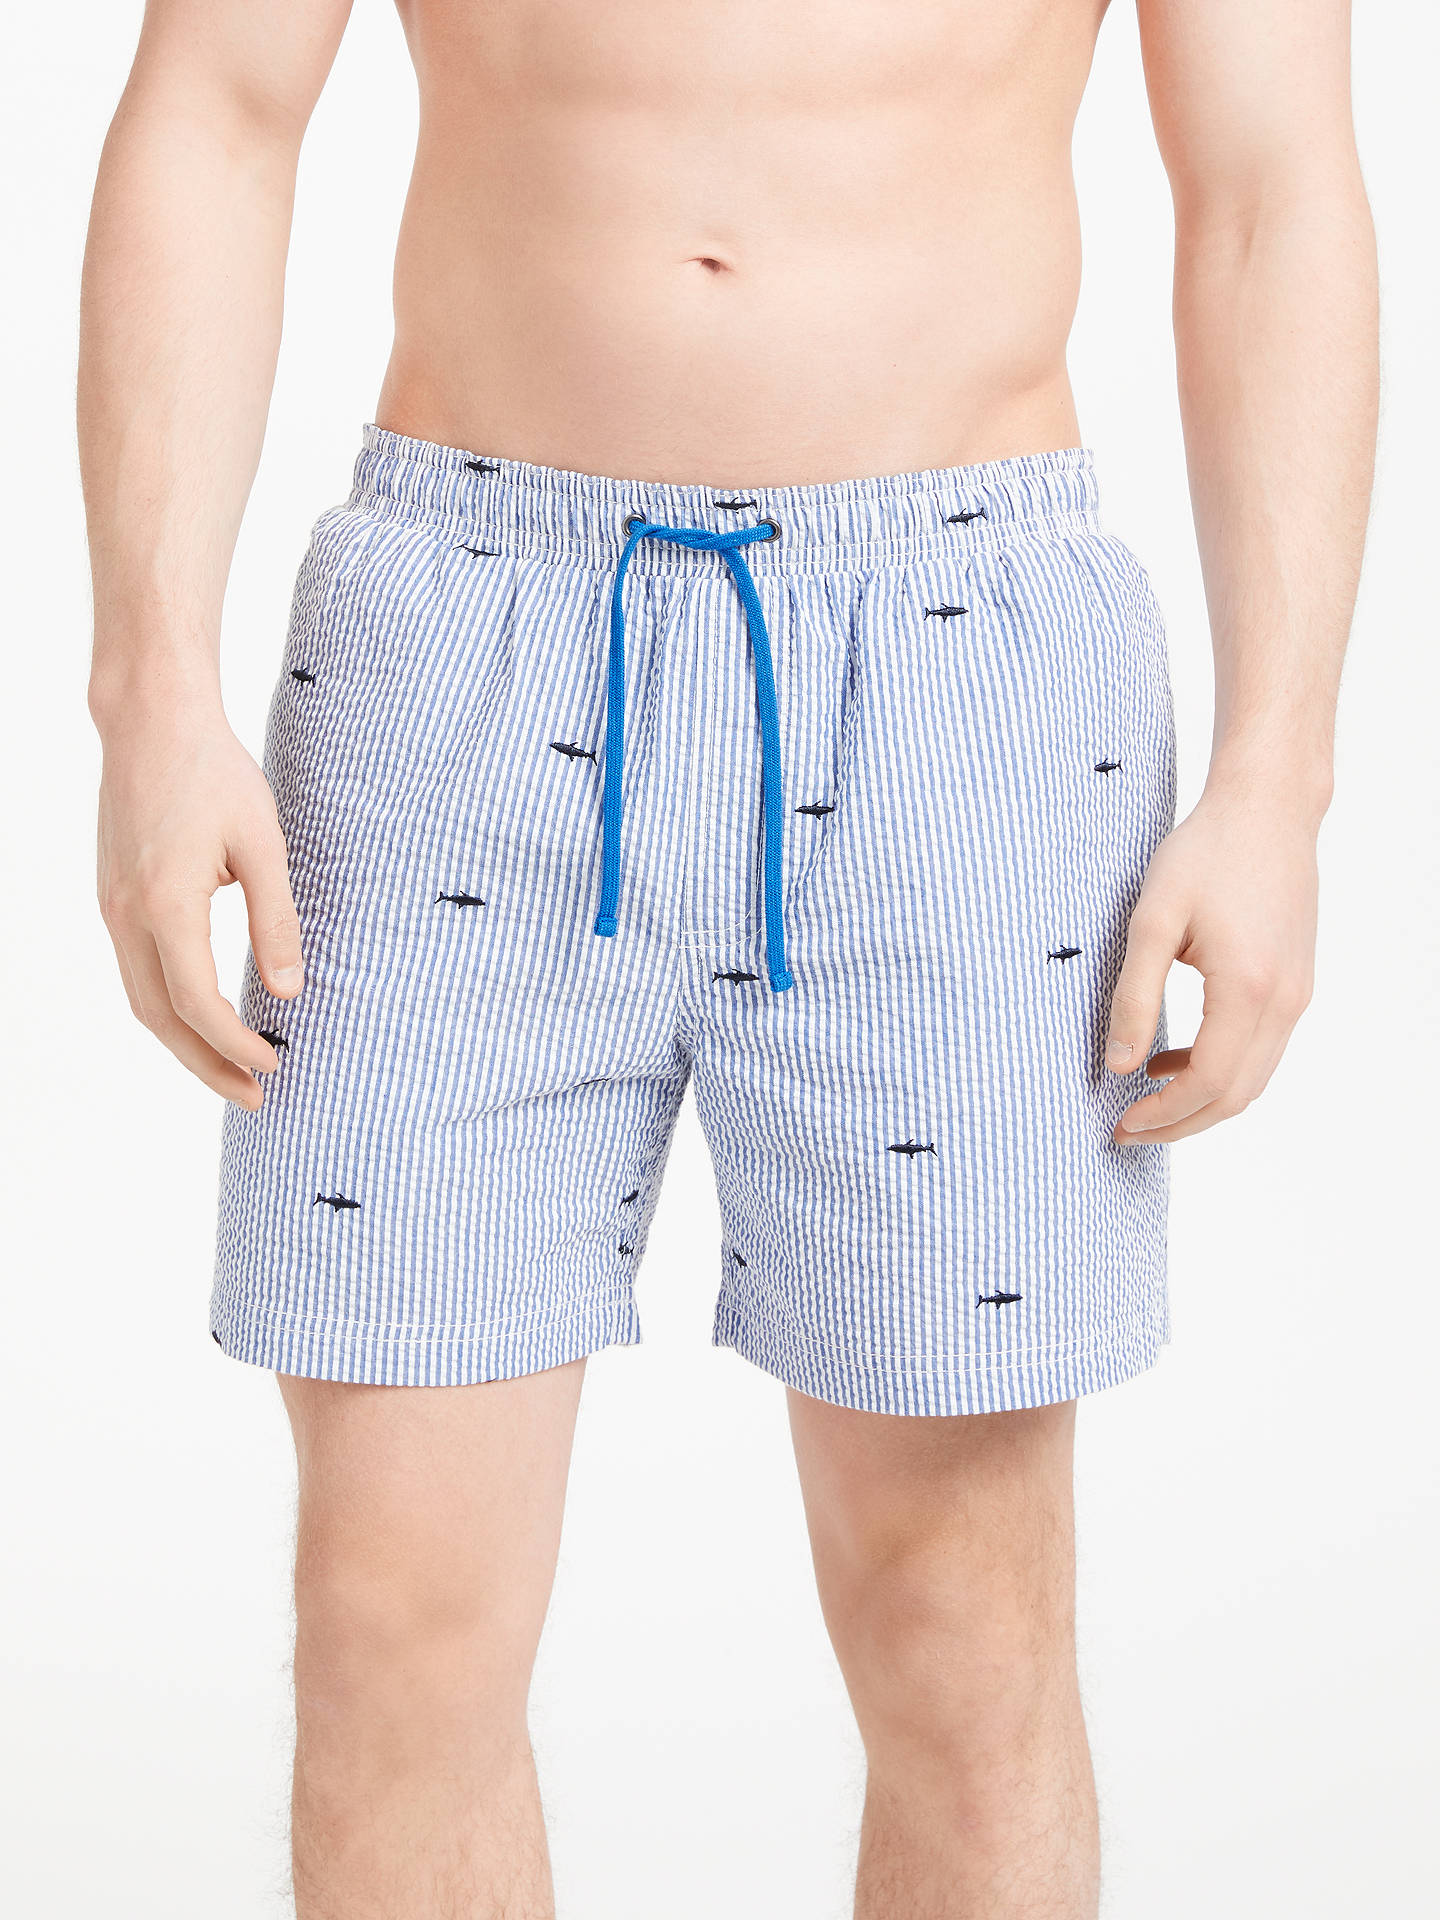 1cfcaa2a64 Buy John Lewis & Partners Whale Shark Embroidery Swim Shorts, Blue, S  Online at ...